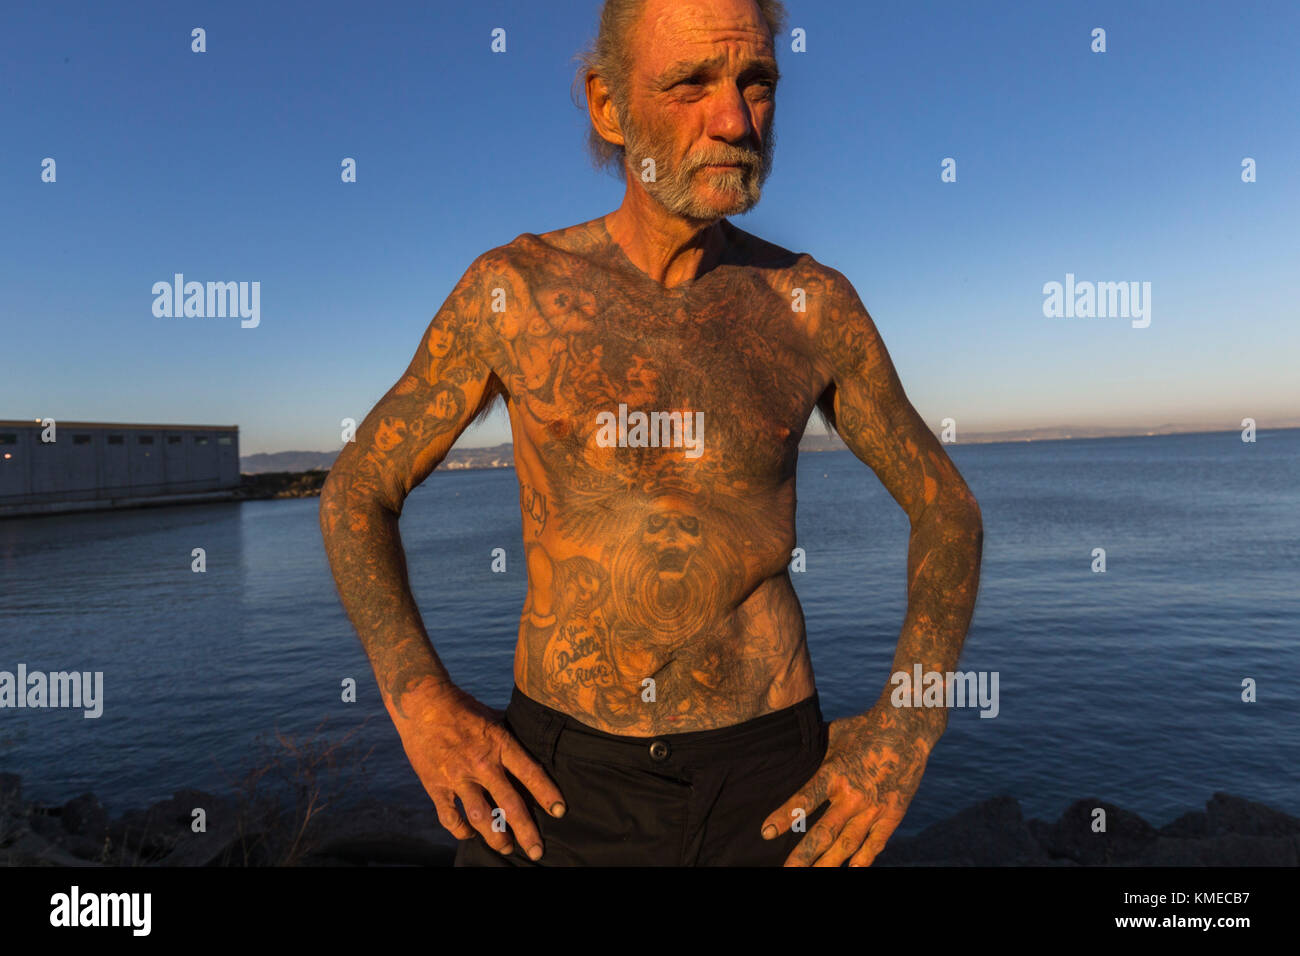 Portrait of homeless man at Warm Water Cove Park, San Francisco, California, USA - Stock Image